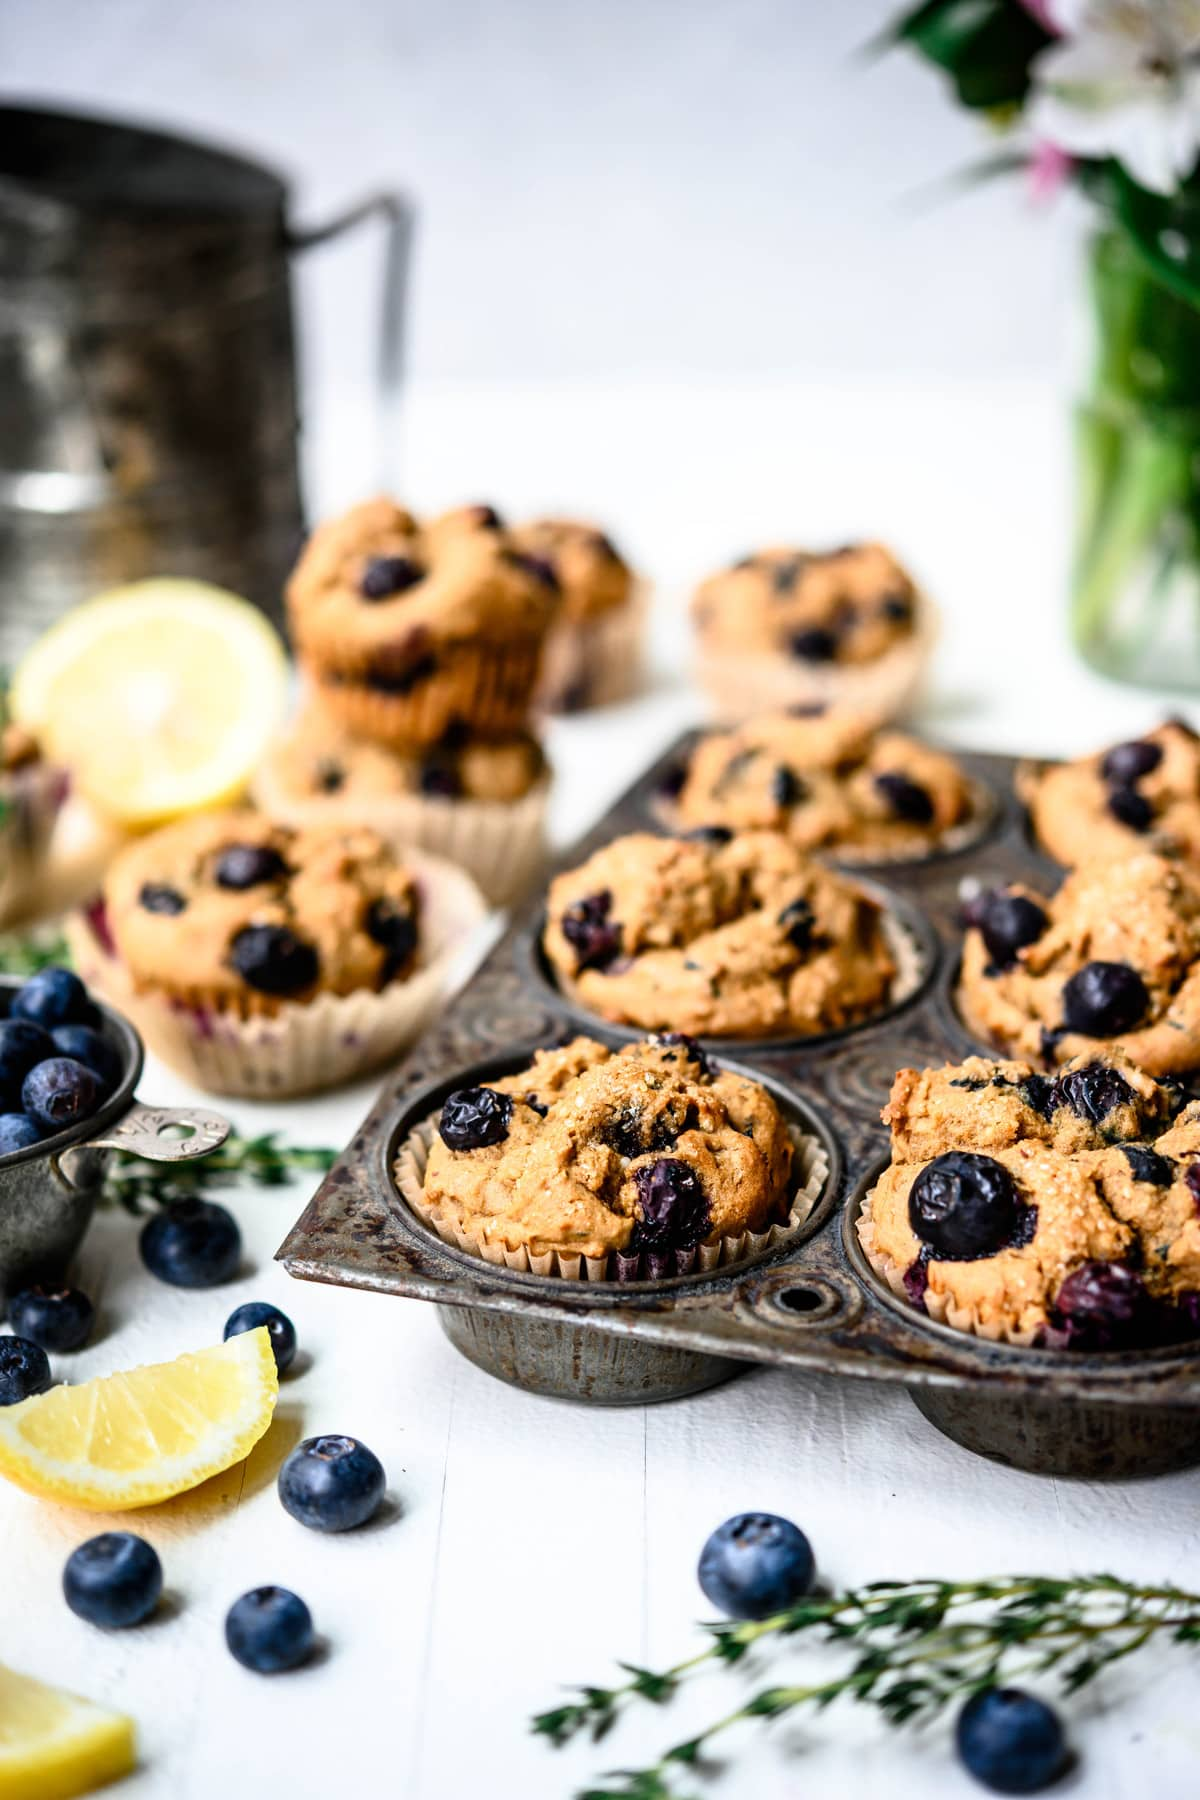 Side view of vegan blueberry lemon muffins in rustic muffin tin on white background